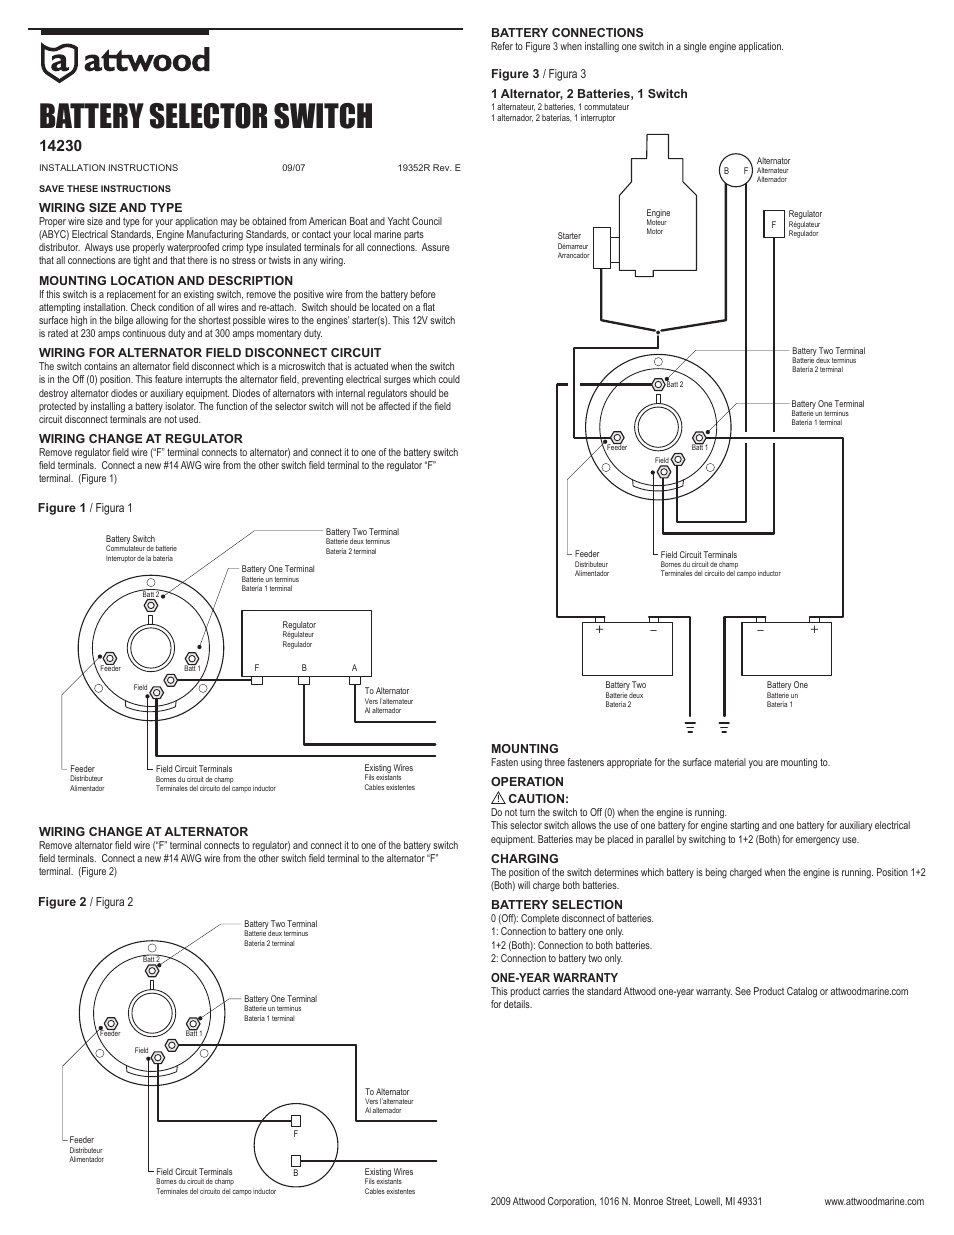 [DIAGRAM] Guest Marine Battery Selector Switch Wiring